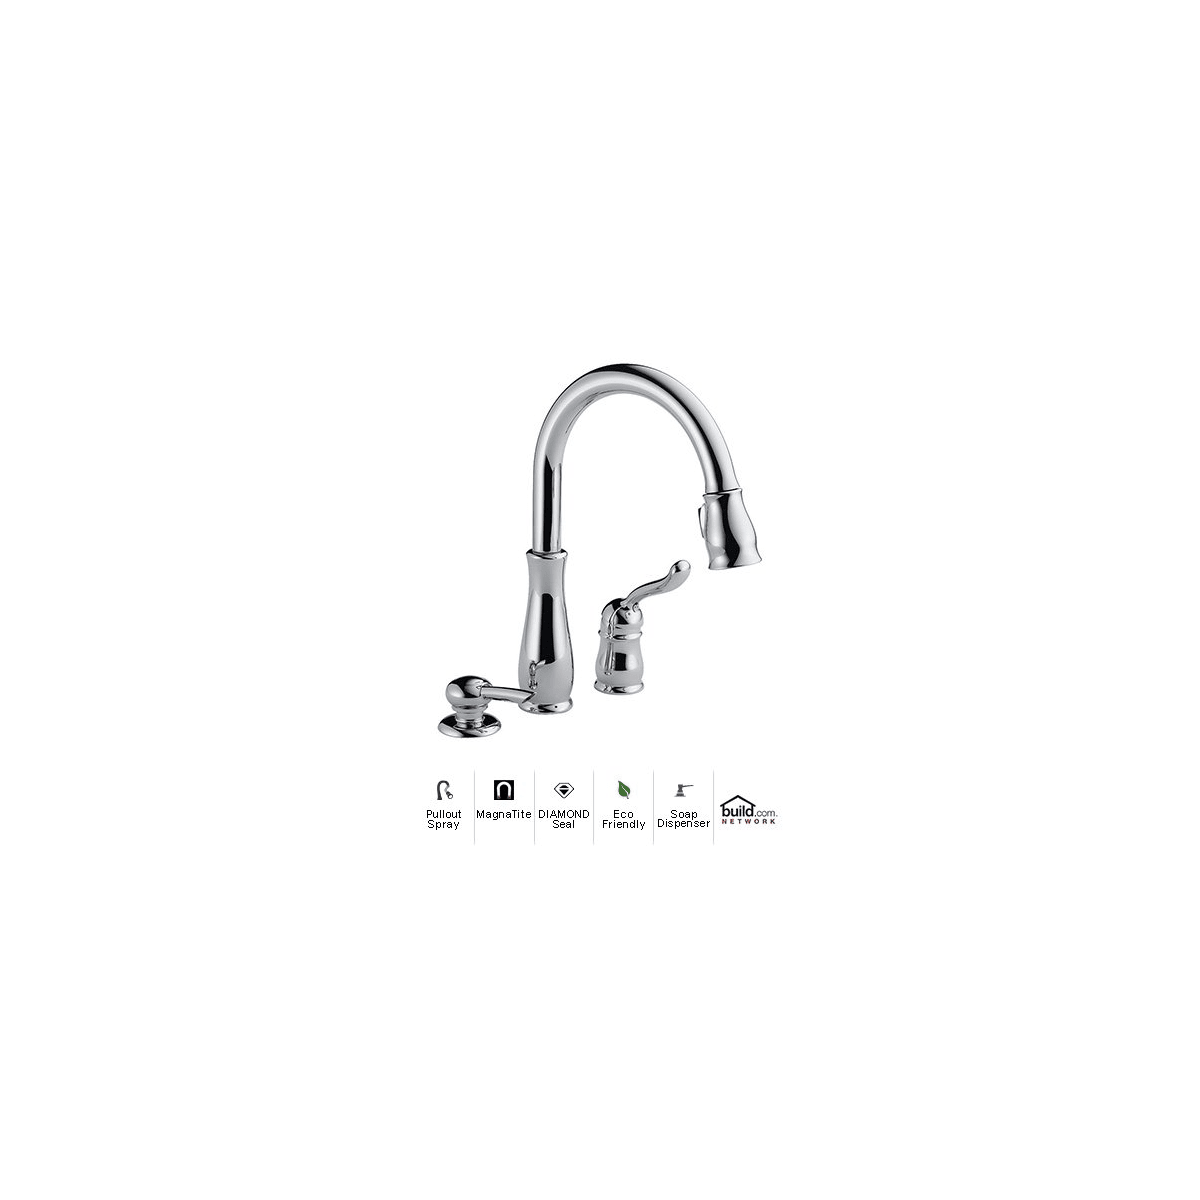 Delta 978 We Dst Sd Chrome Leland Pull Down Kitchen Faucet With Magnetic Docking Spray Head And Soap Lotion Dispenser Water Efficient Includes Lifetime Warranty Faucetdirect Com